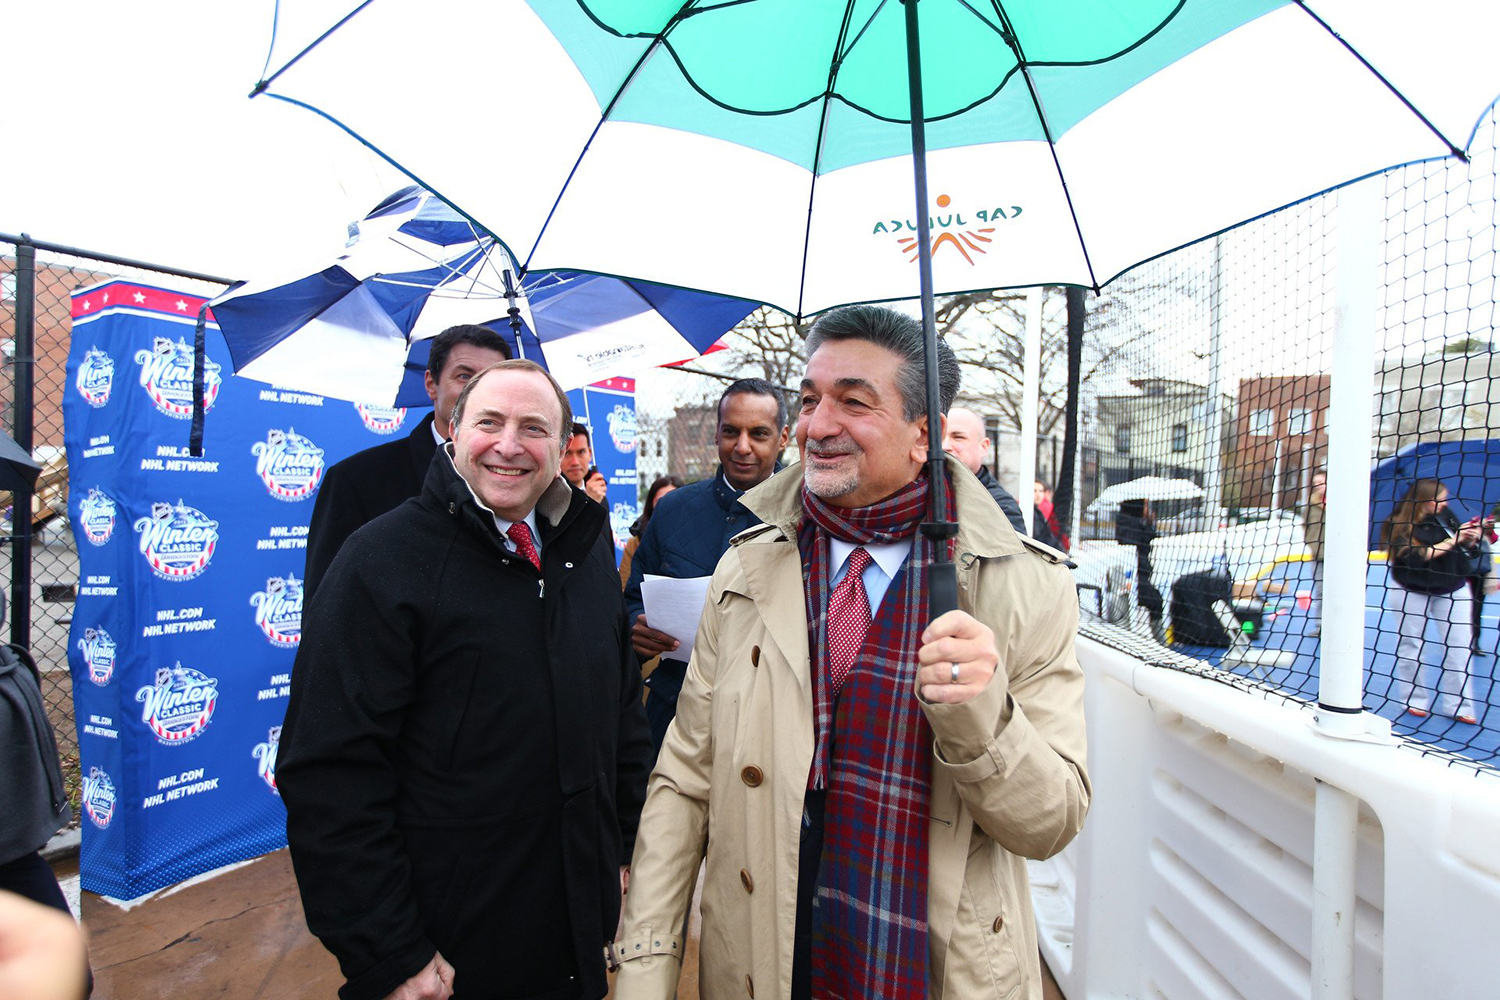 SI's Simon Bruty and Dan Greene spent the day with Ted Leonsis, owner of multiple sports franchises in the Washington, D.C. area, including the Wizards (NBA), Capitals (NHL) and Mystics (WNBA).